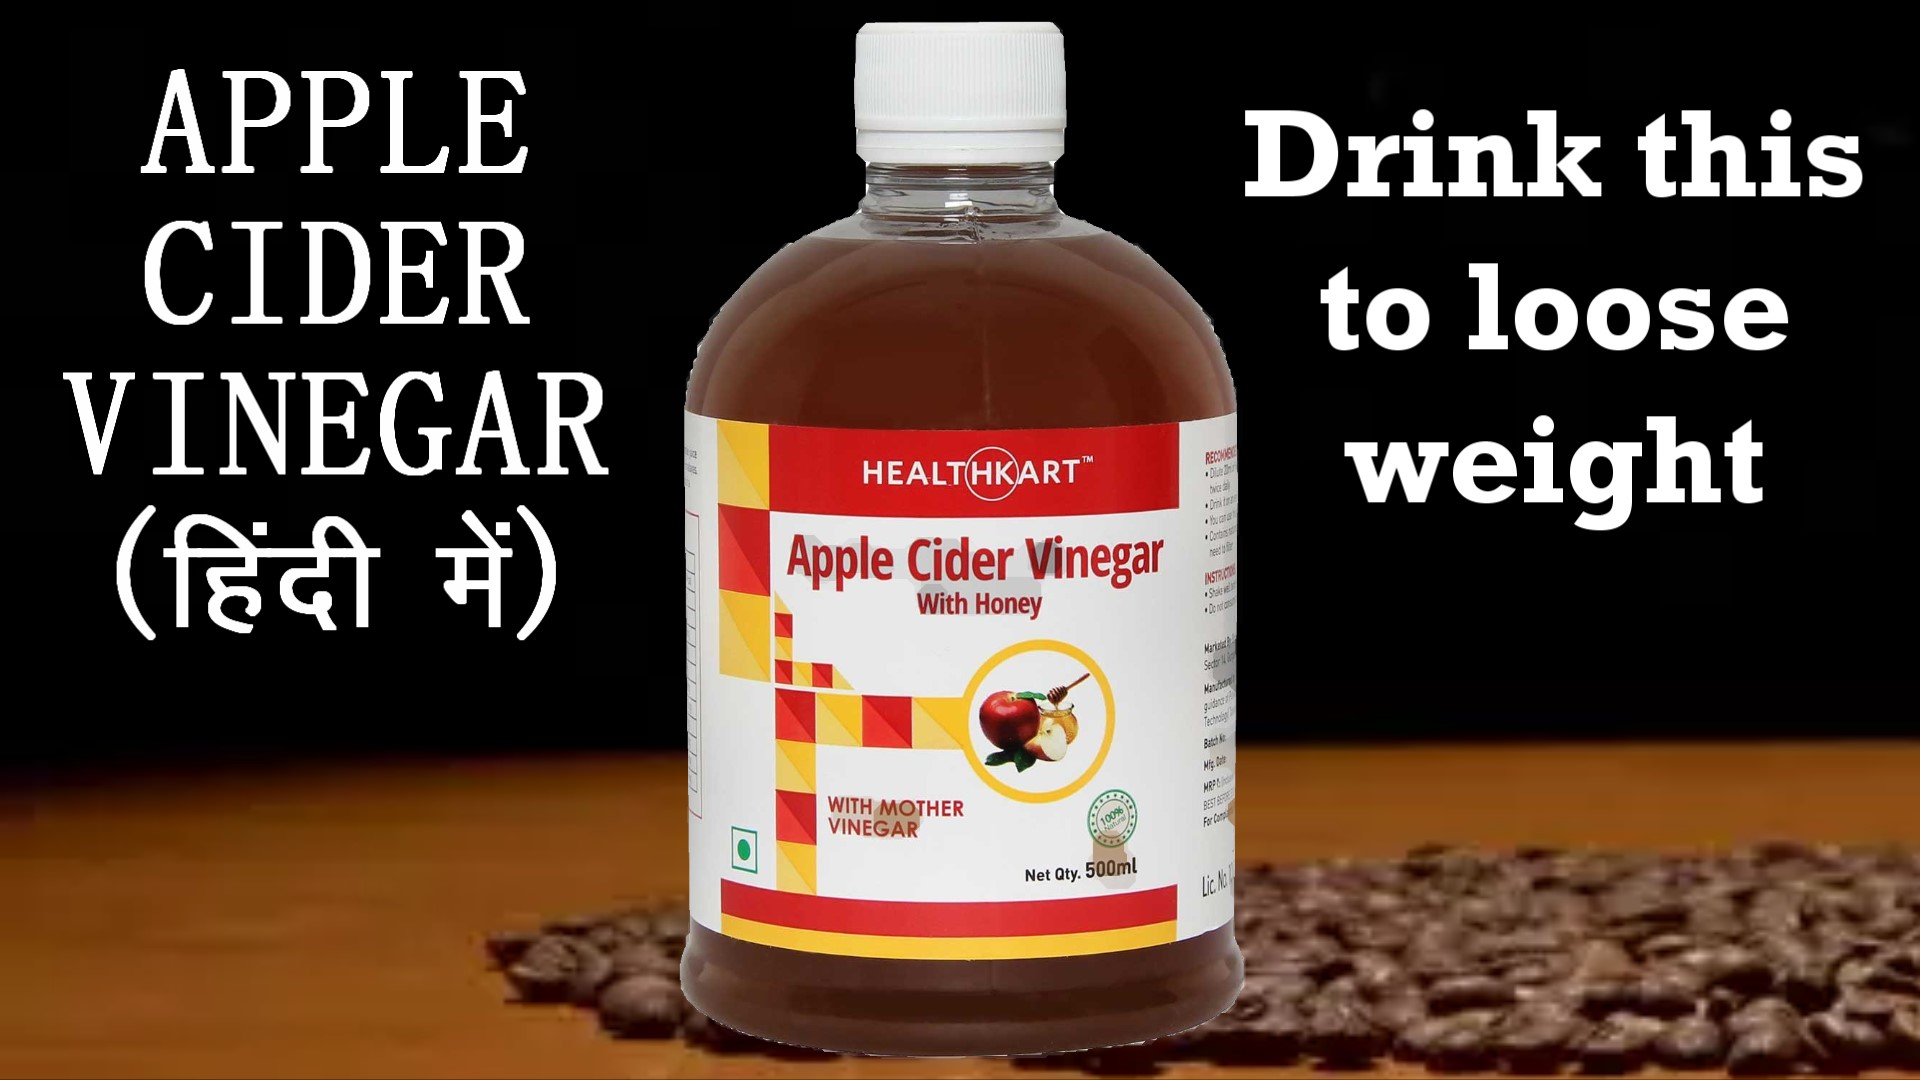 Apple Cider Vinegar | A Magical Drink | Weight Loss & Other Benefits